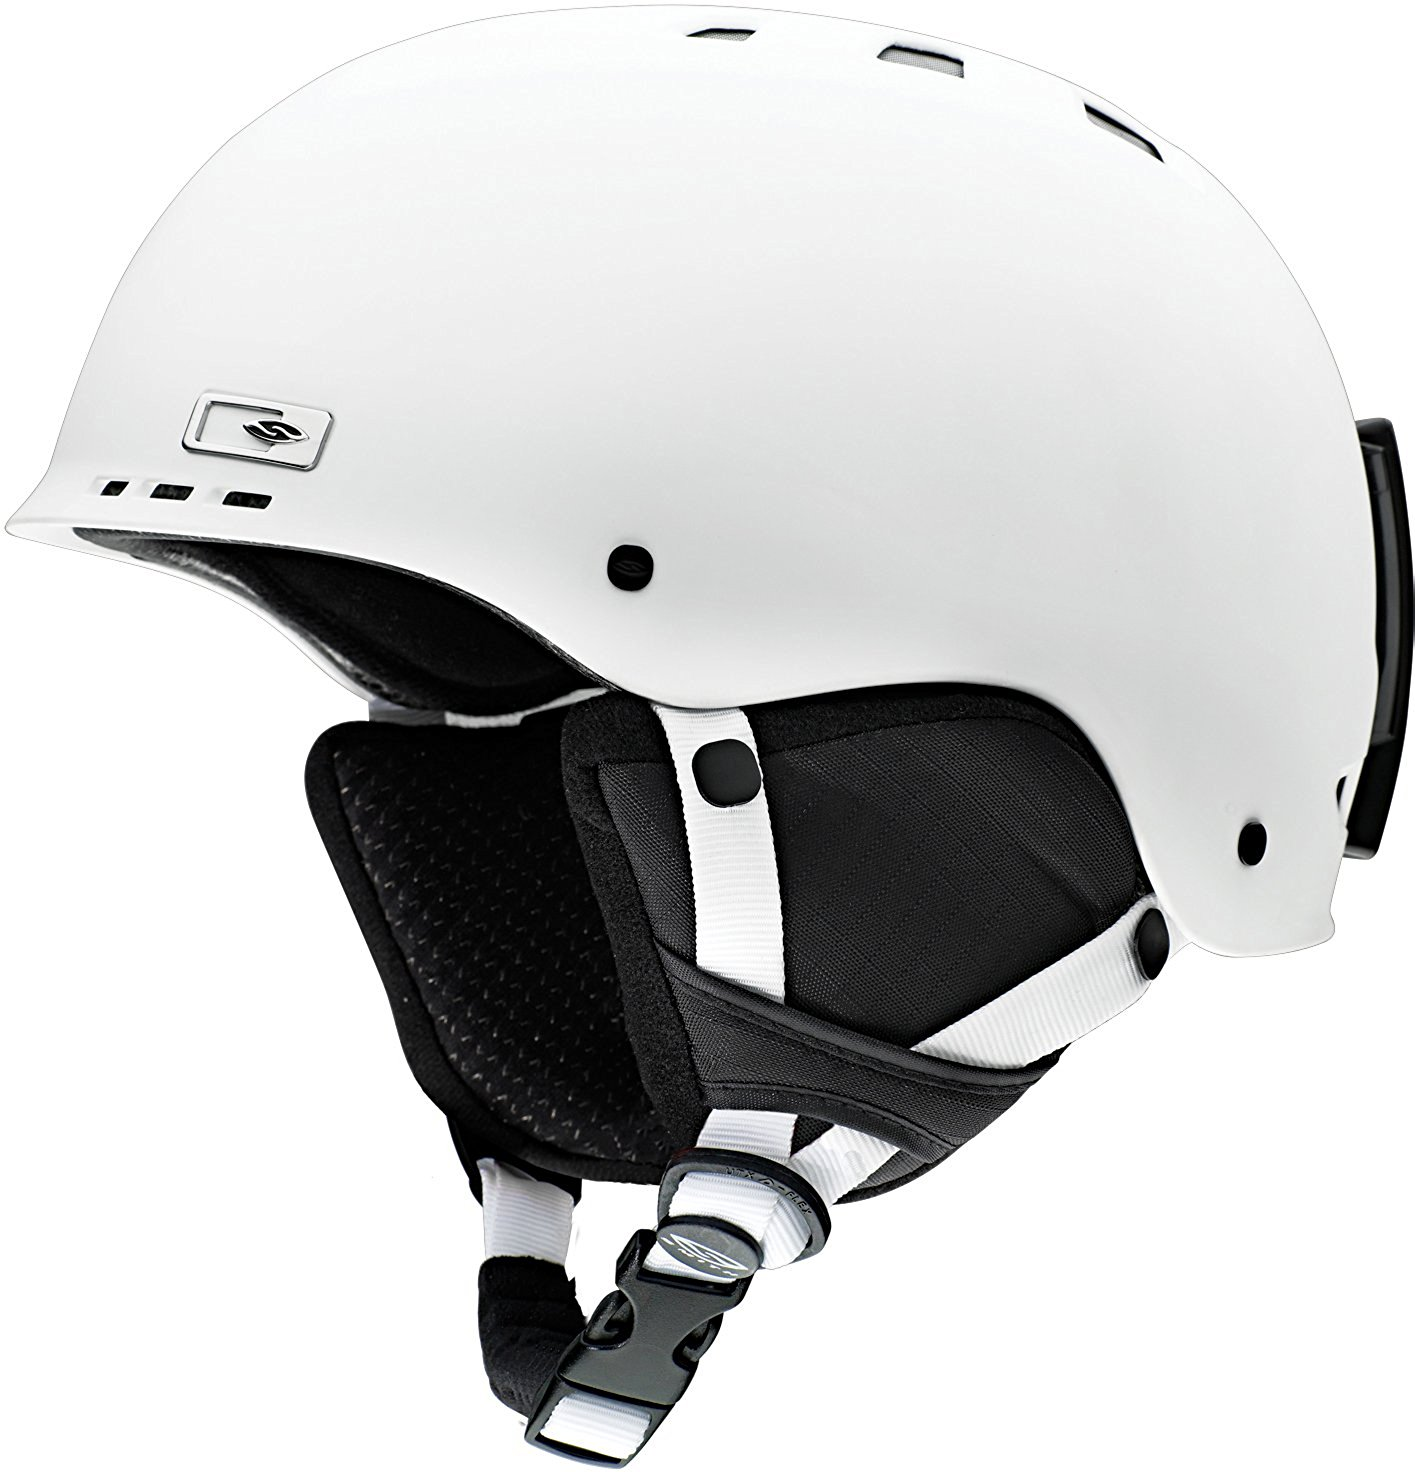 Unisex Adult Holt Snow Sports Helmet Matte Black Xlarge (63-67CM) By Smith Optics by